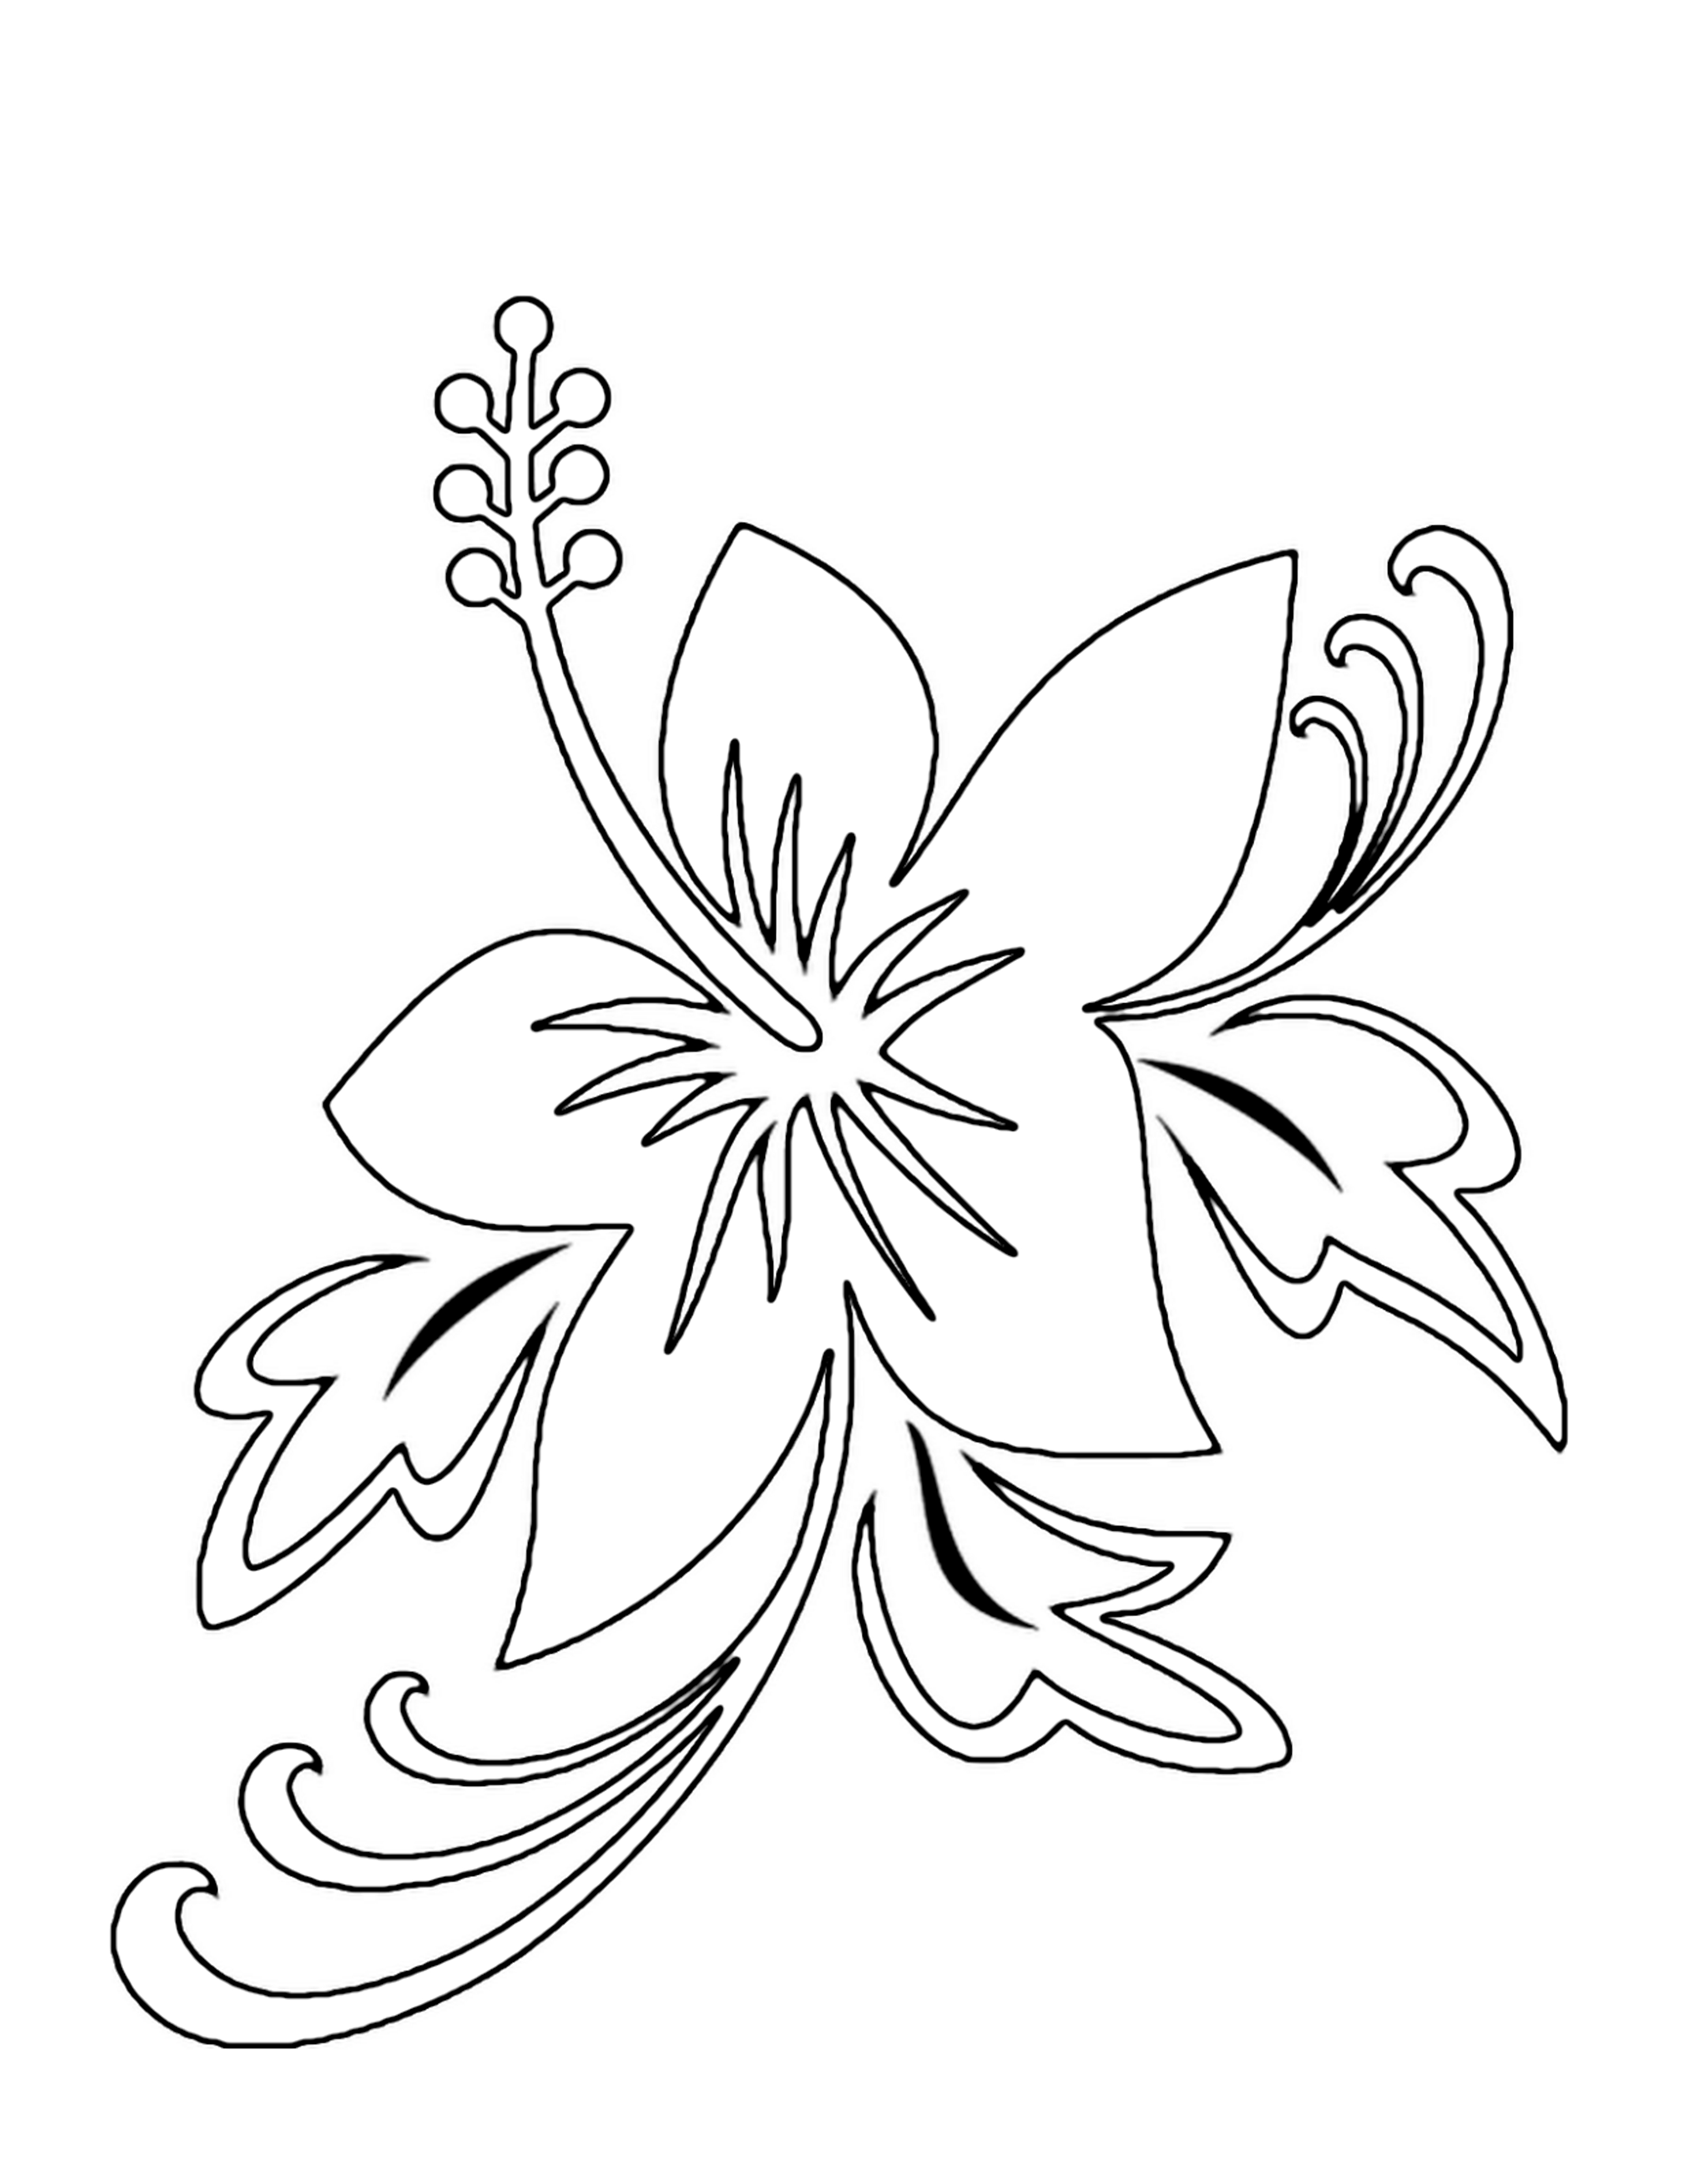 coloring pictures of a flower free printable flower coloring pages for kids best pictures of flower a coloring